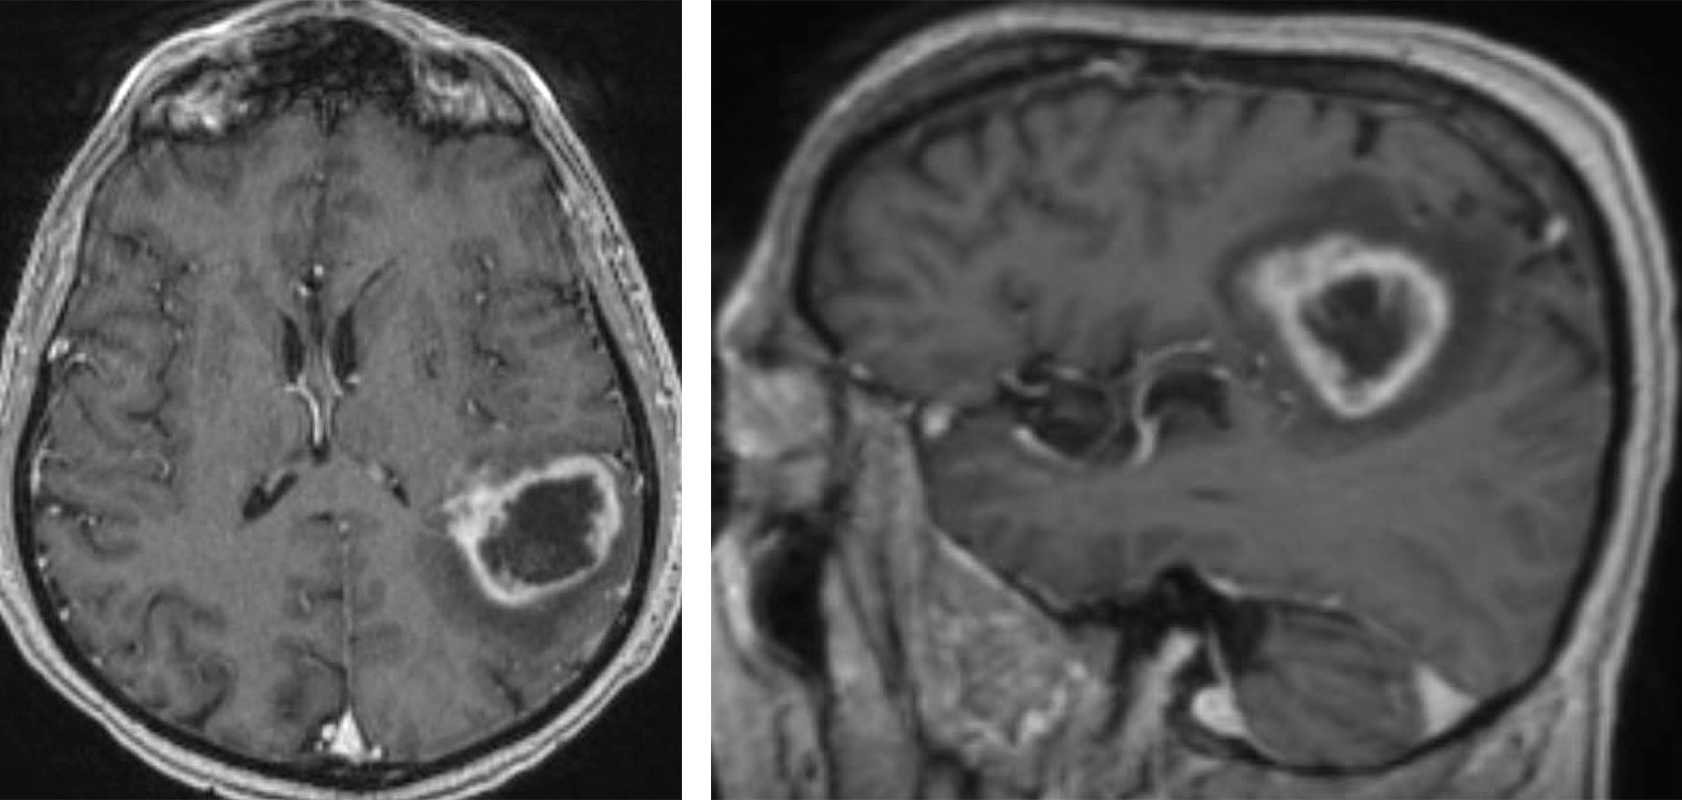 Figure 3: This 62 year-old patient presented with mild speech difficulty and was diagnosed with a HGG around the angular gyrus on imaging. In my opinion, resection of this mass, despite the use of awake mapping techniques, carries a real risk of permanent speech dysfunction. This tumor was only biopsied and further treated with adjuvant therapies.